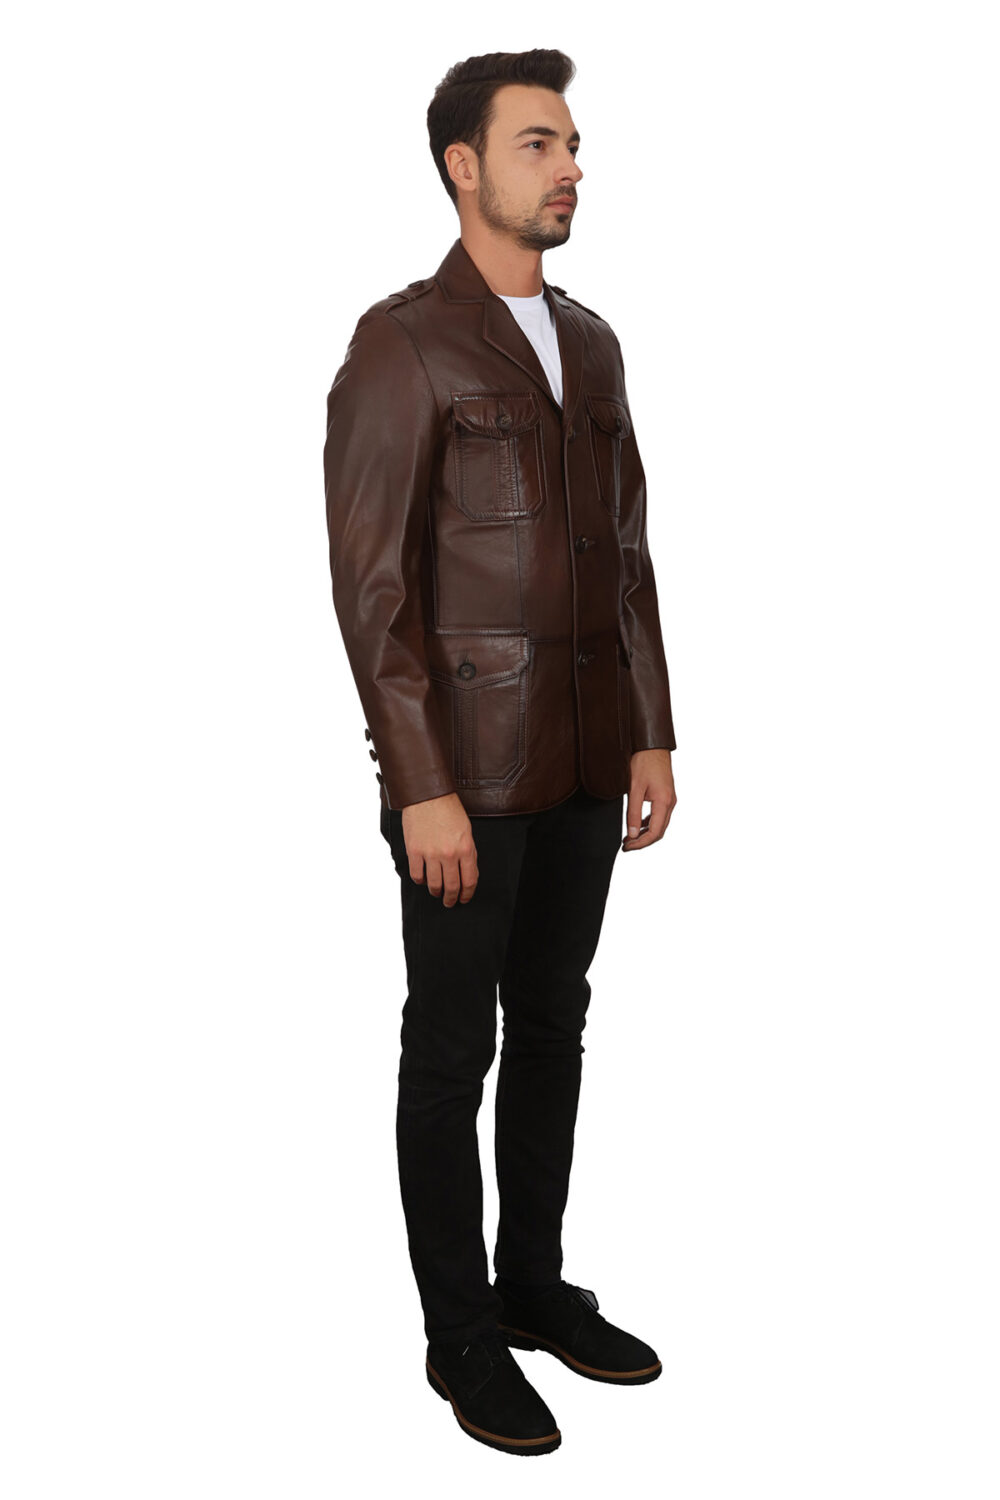 Cheapest Leather Jackets